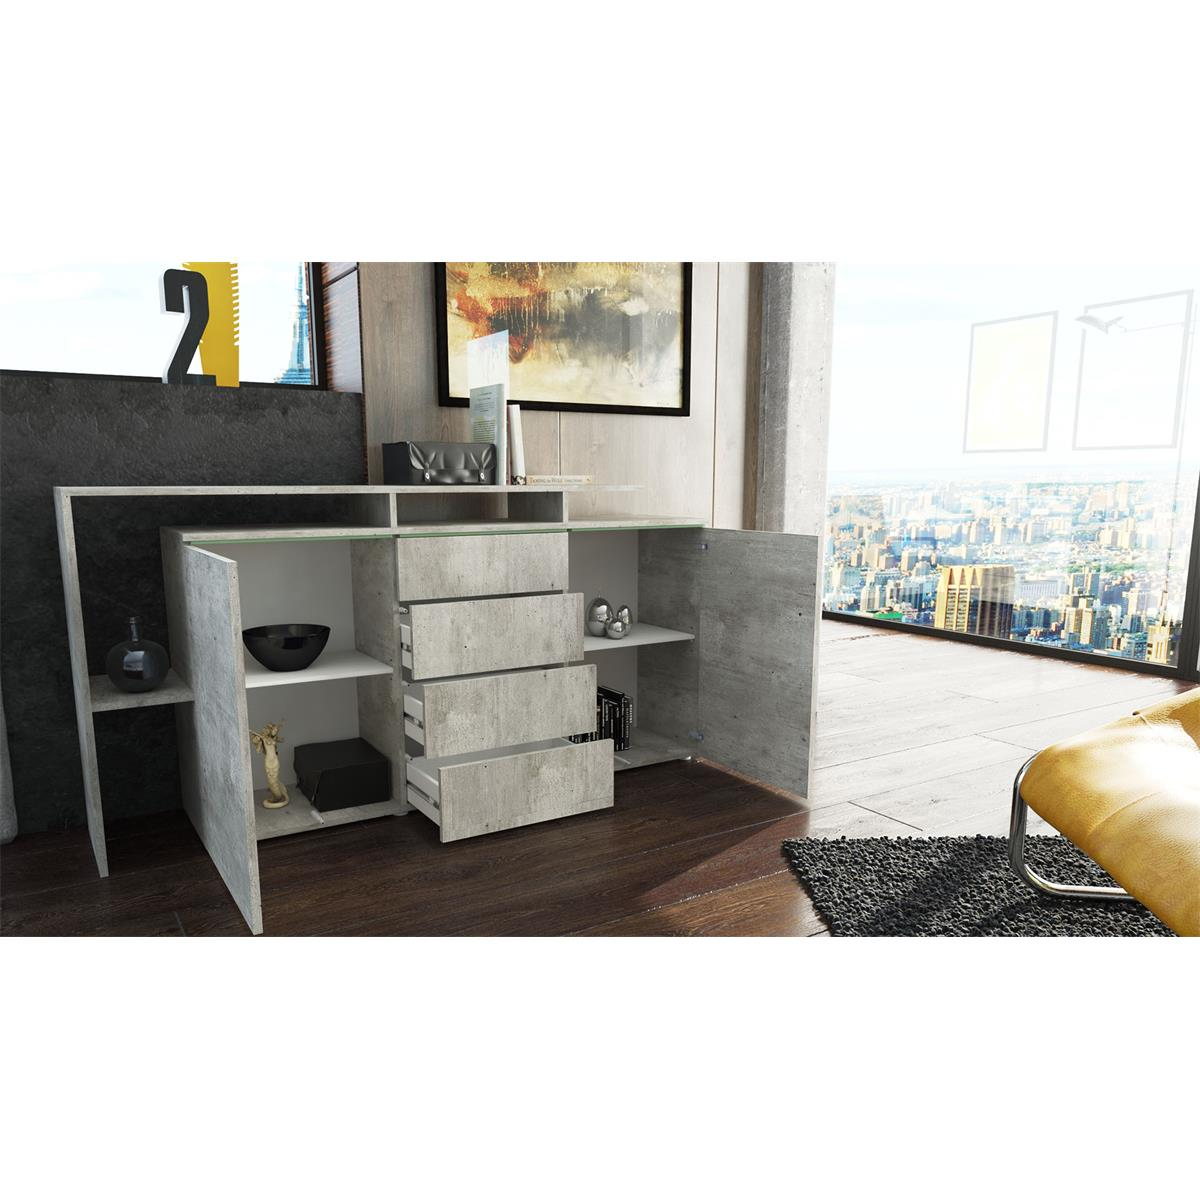 sideboard lissabon mit regalaufbau glaselemente led. Black Bedroom Furniture Sets. Home Design Ideas